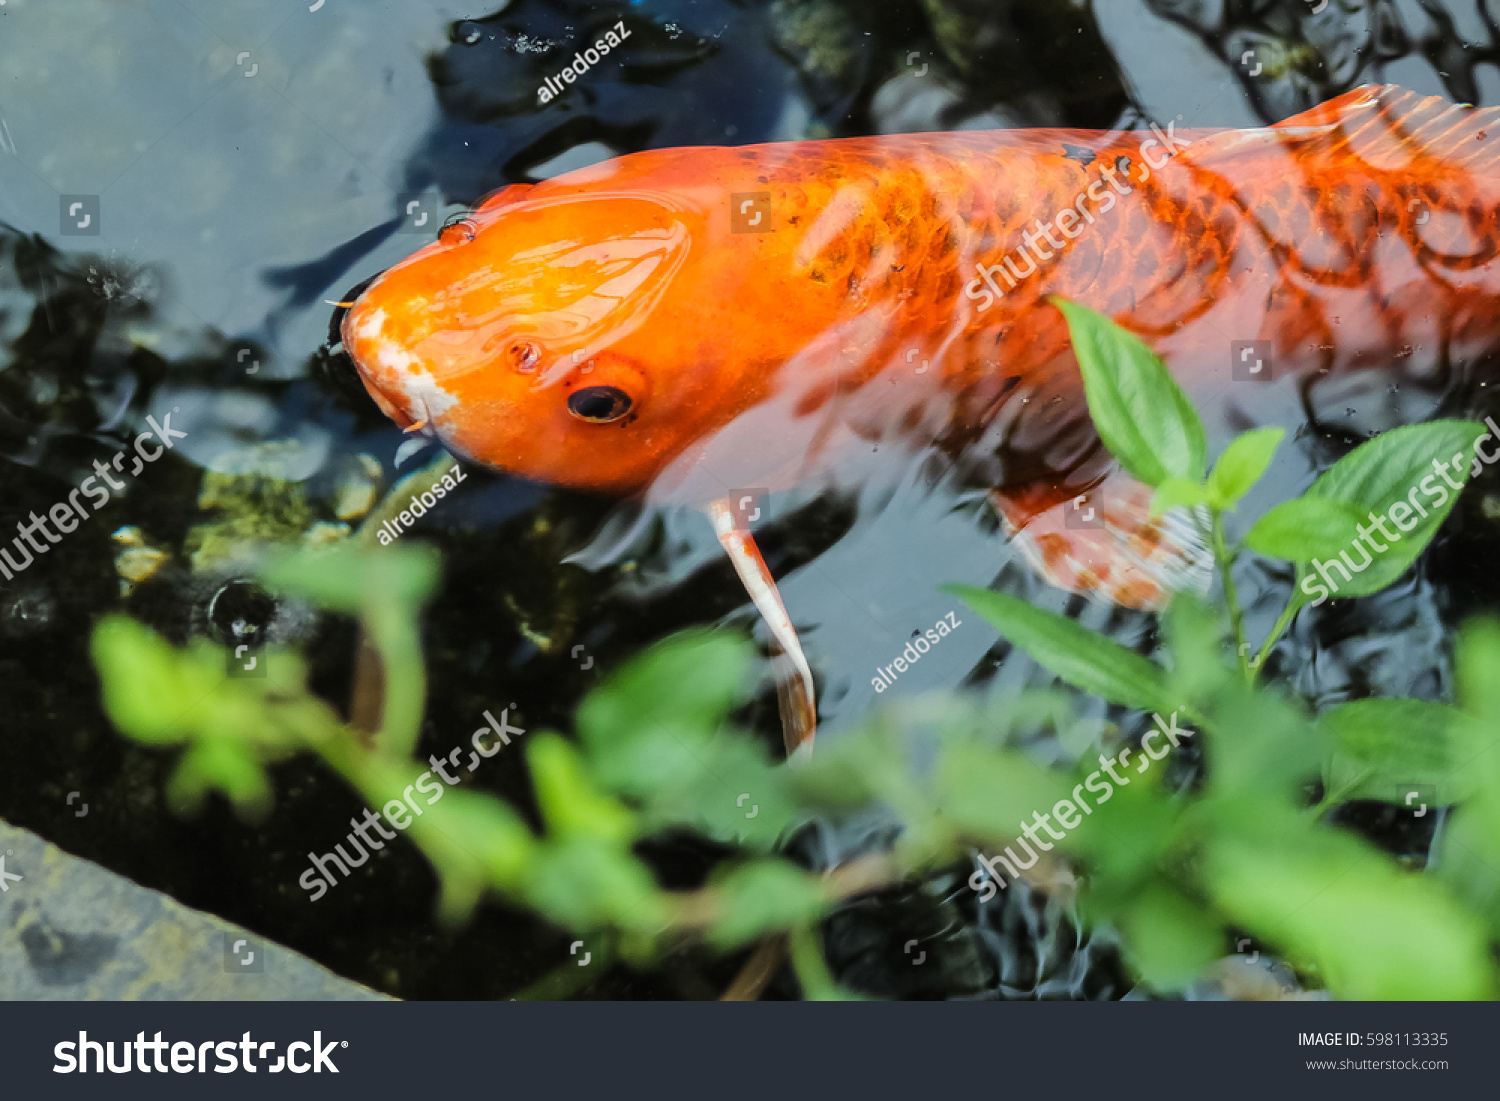 Koi fancy orange carp stock photo 598113335 shutterstock for Orange koi carp